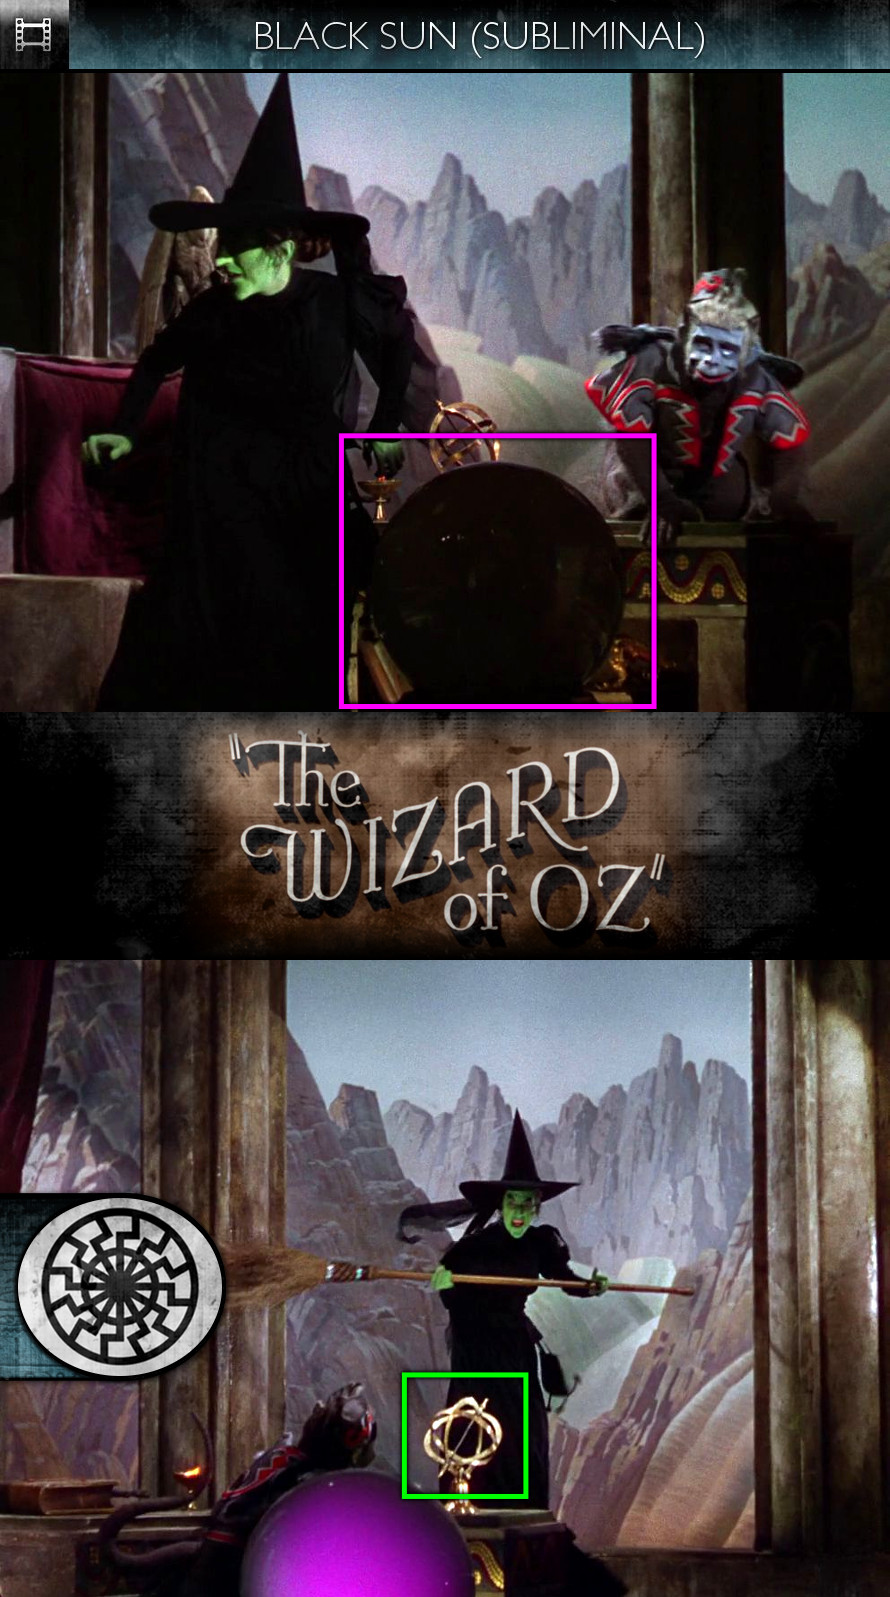 The Wizard of Oz (1939) - Black Sun - Subliminal